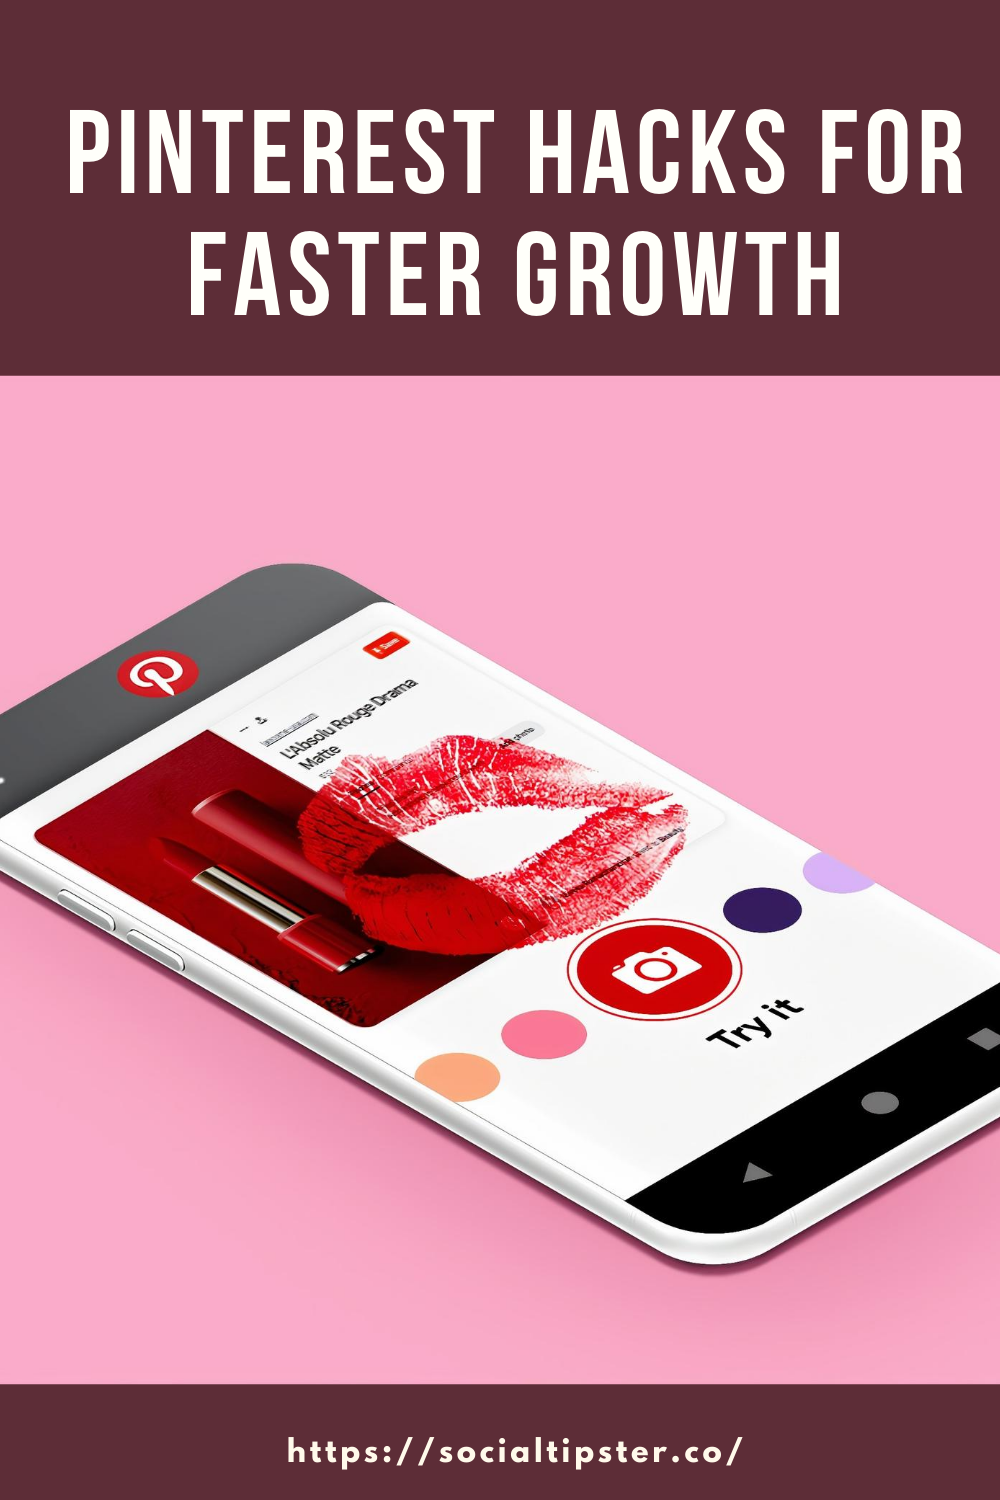 Pinterest hacks for faster growth